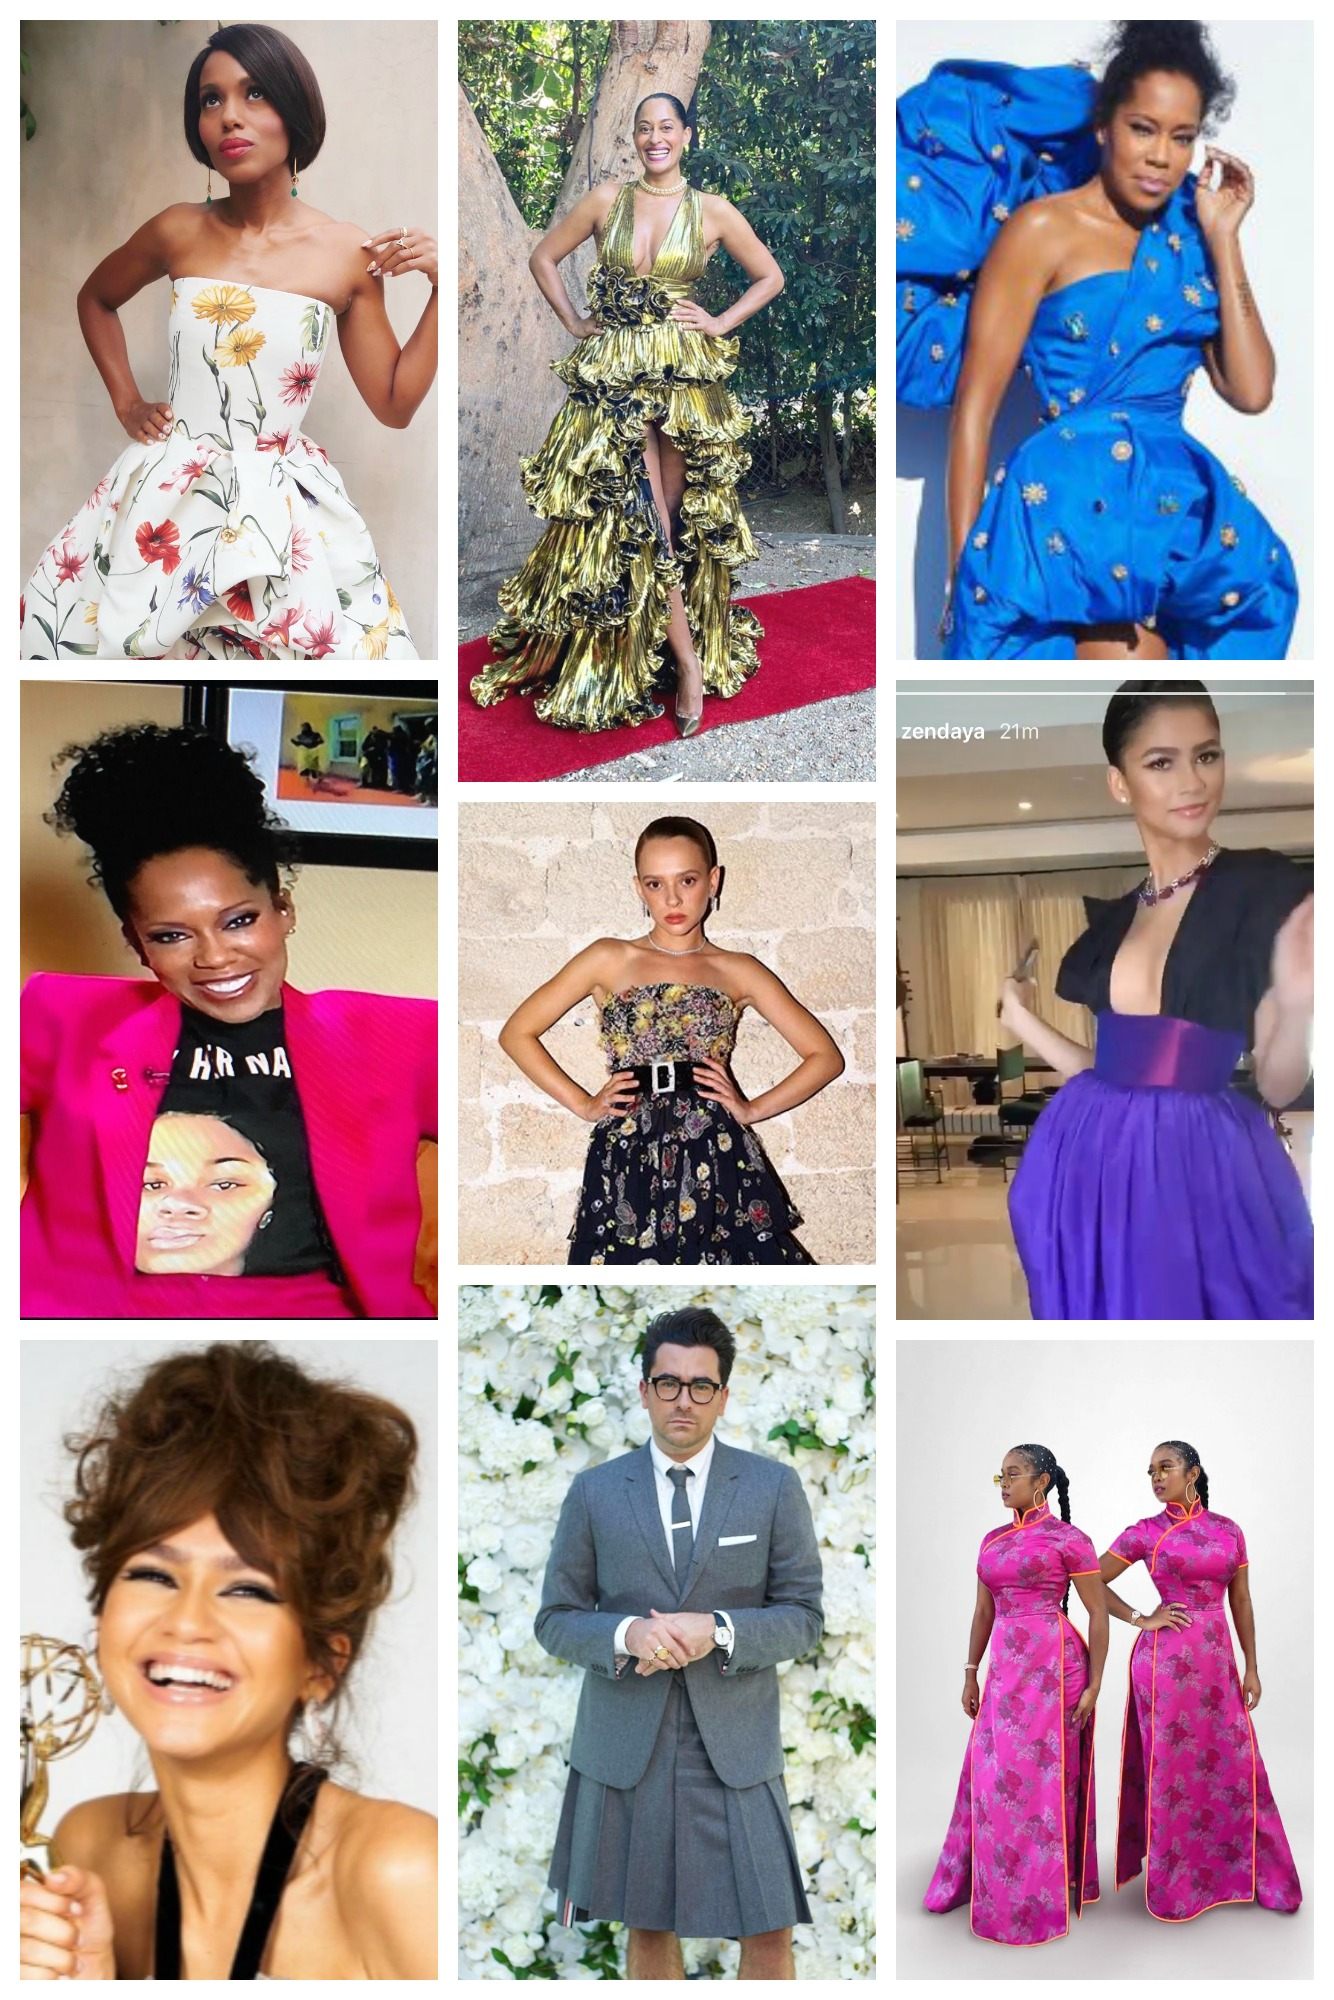 2020 Emmys Recap I From the celebrity fashions to the biggest highs and lows of ABC's attempt at a virtual major awards show #Emmys #RedCarpetFashion